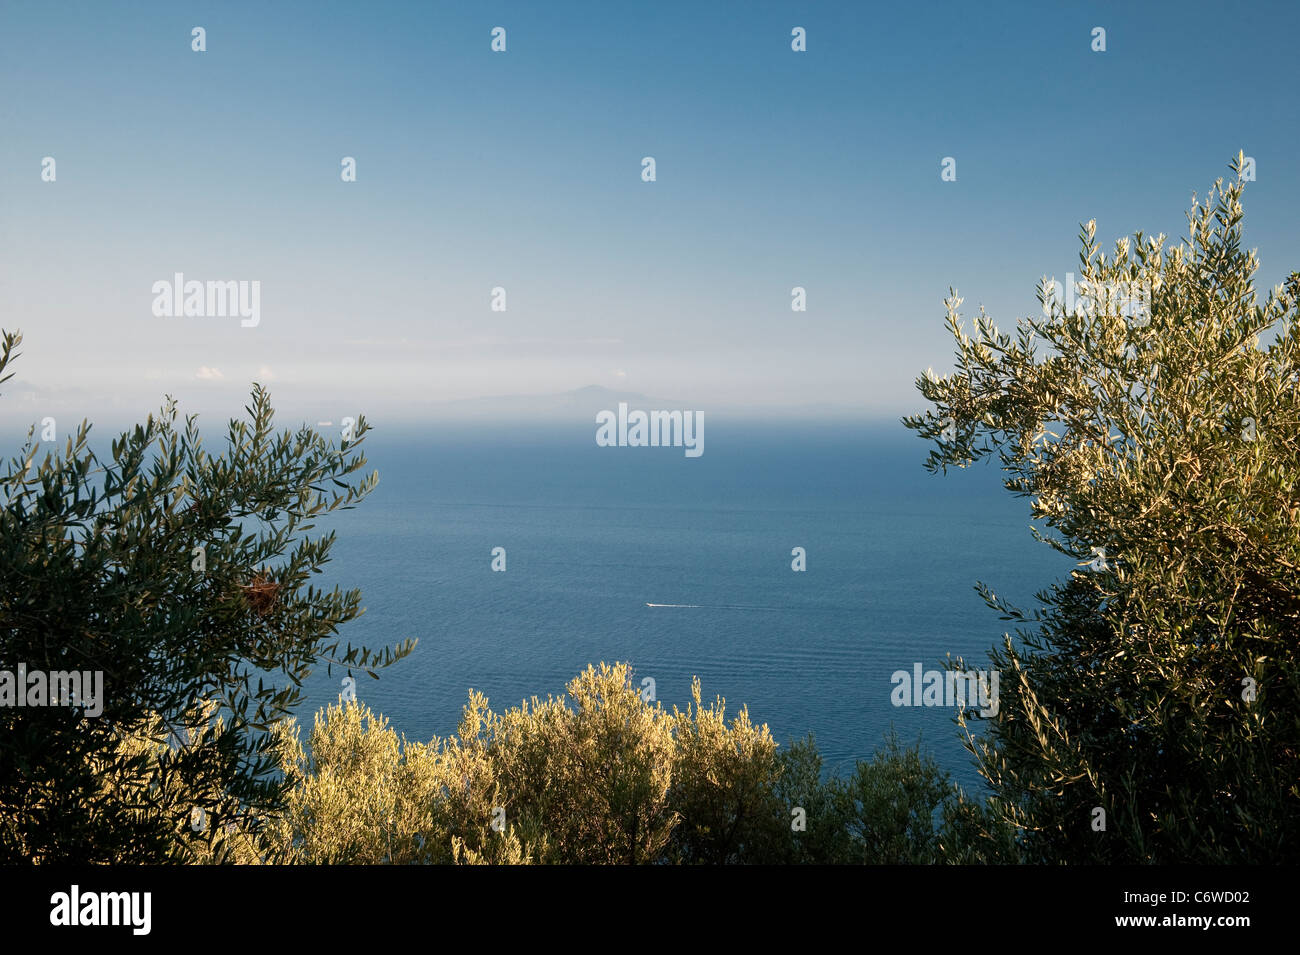 View from above Amalfi, Italy, looking over the Tyrrhenian Sea towards the distant mountains of Sicily - Stock Image